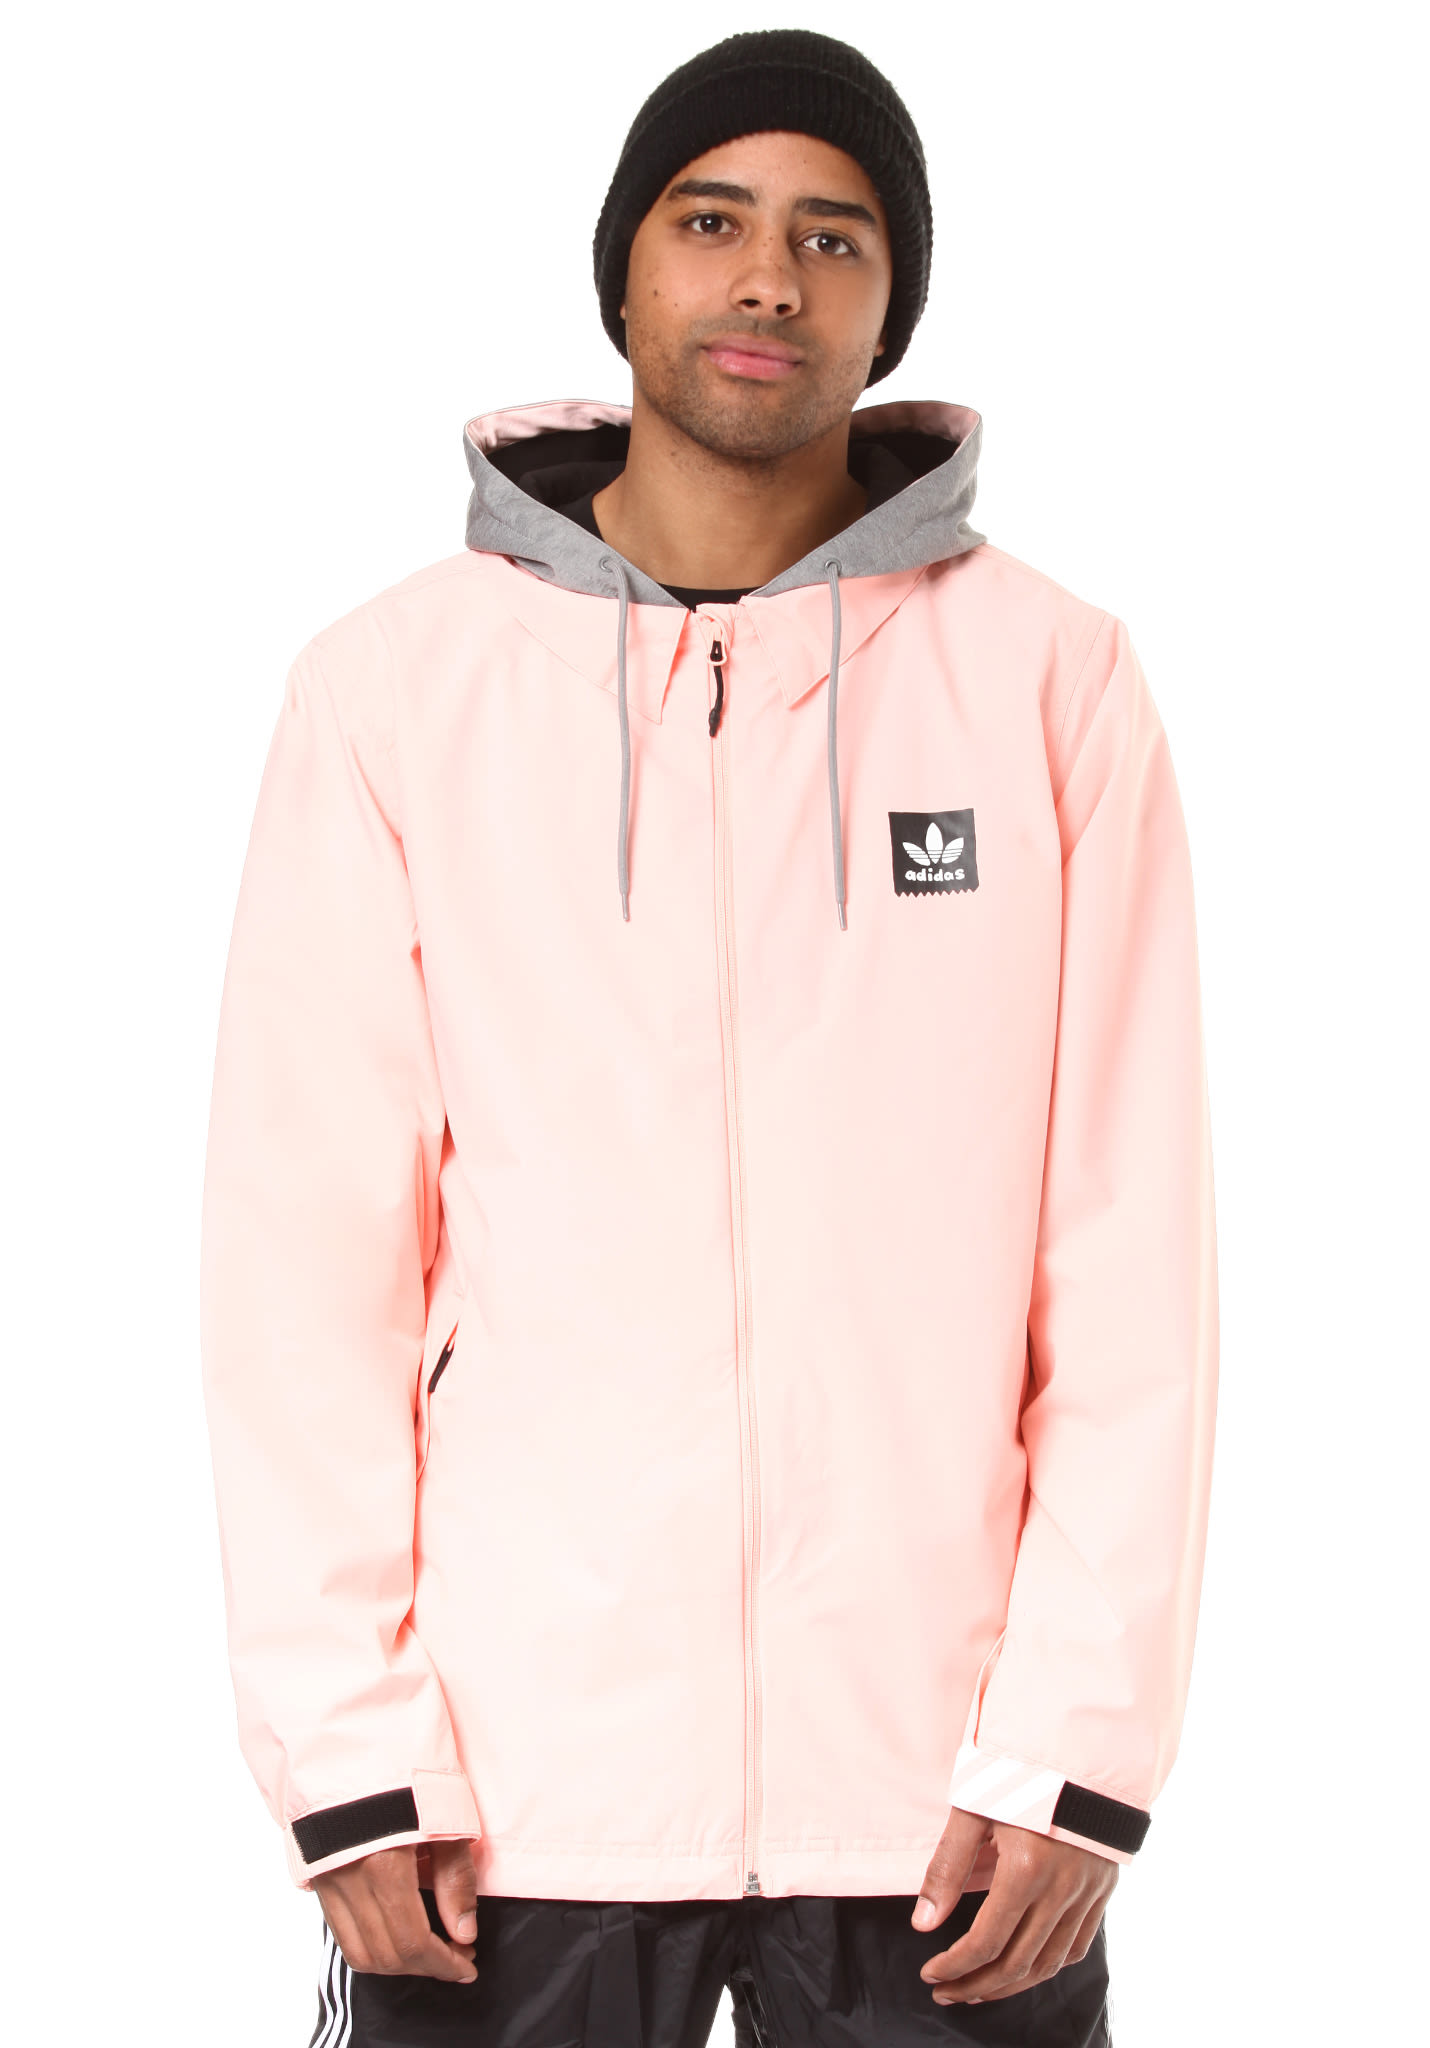 ADIDAS Civilliangnz - Snowboard Jacket for Men - Pink - Planet Sports